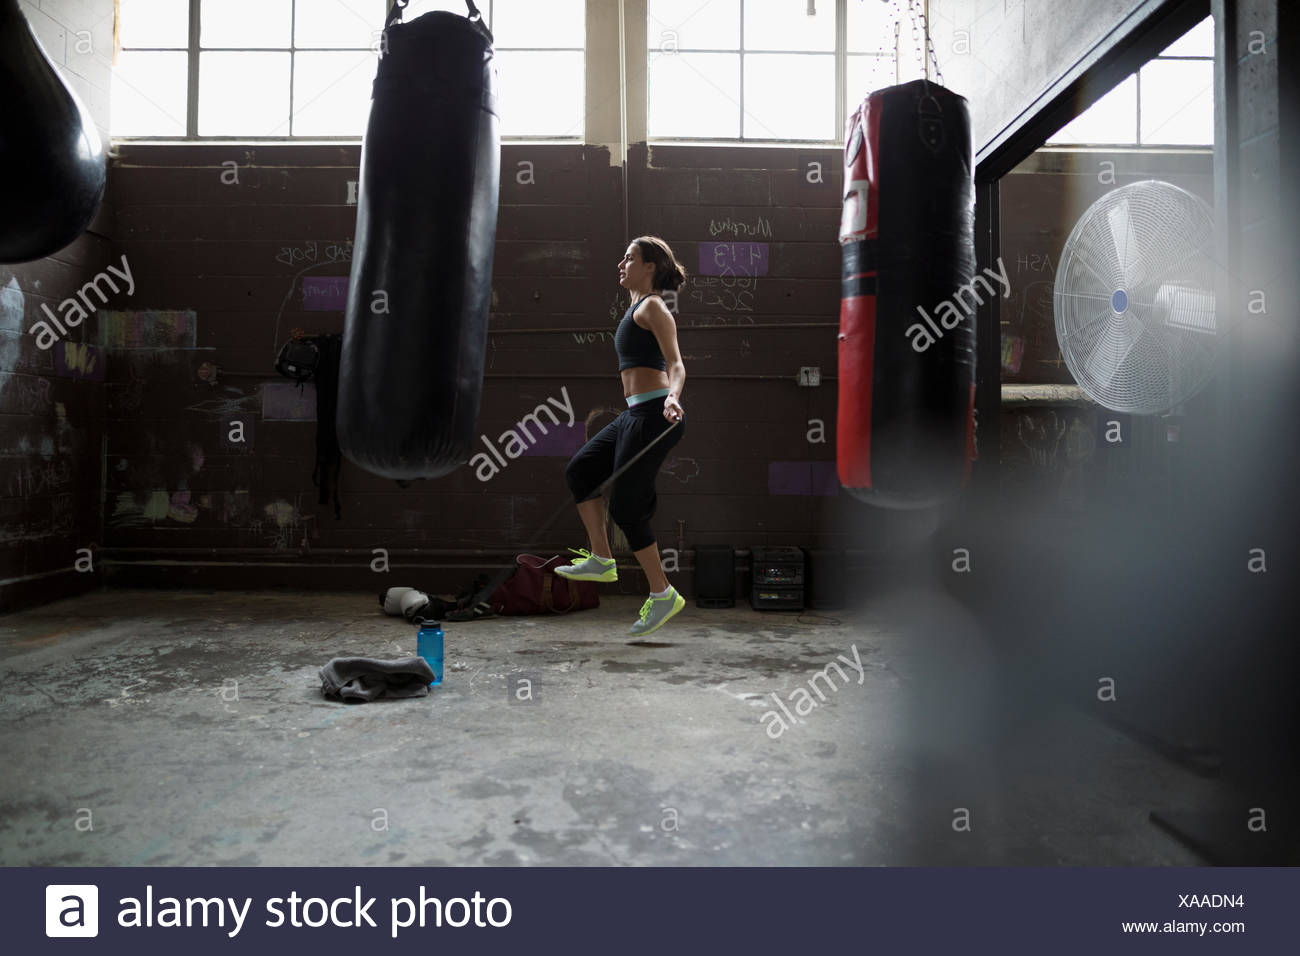 Female boxer jumping rope behind punching bags in gym - Stock Image